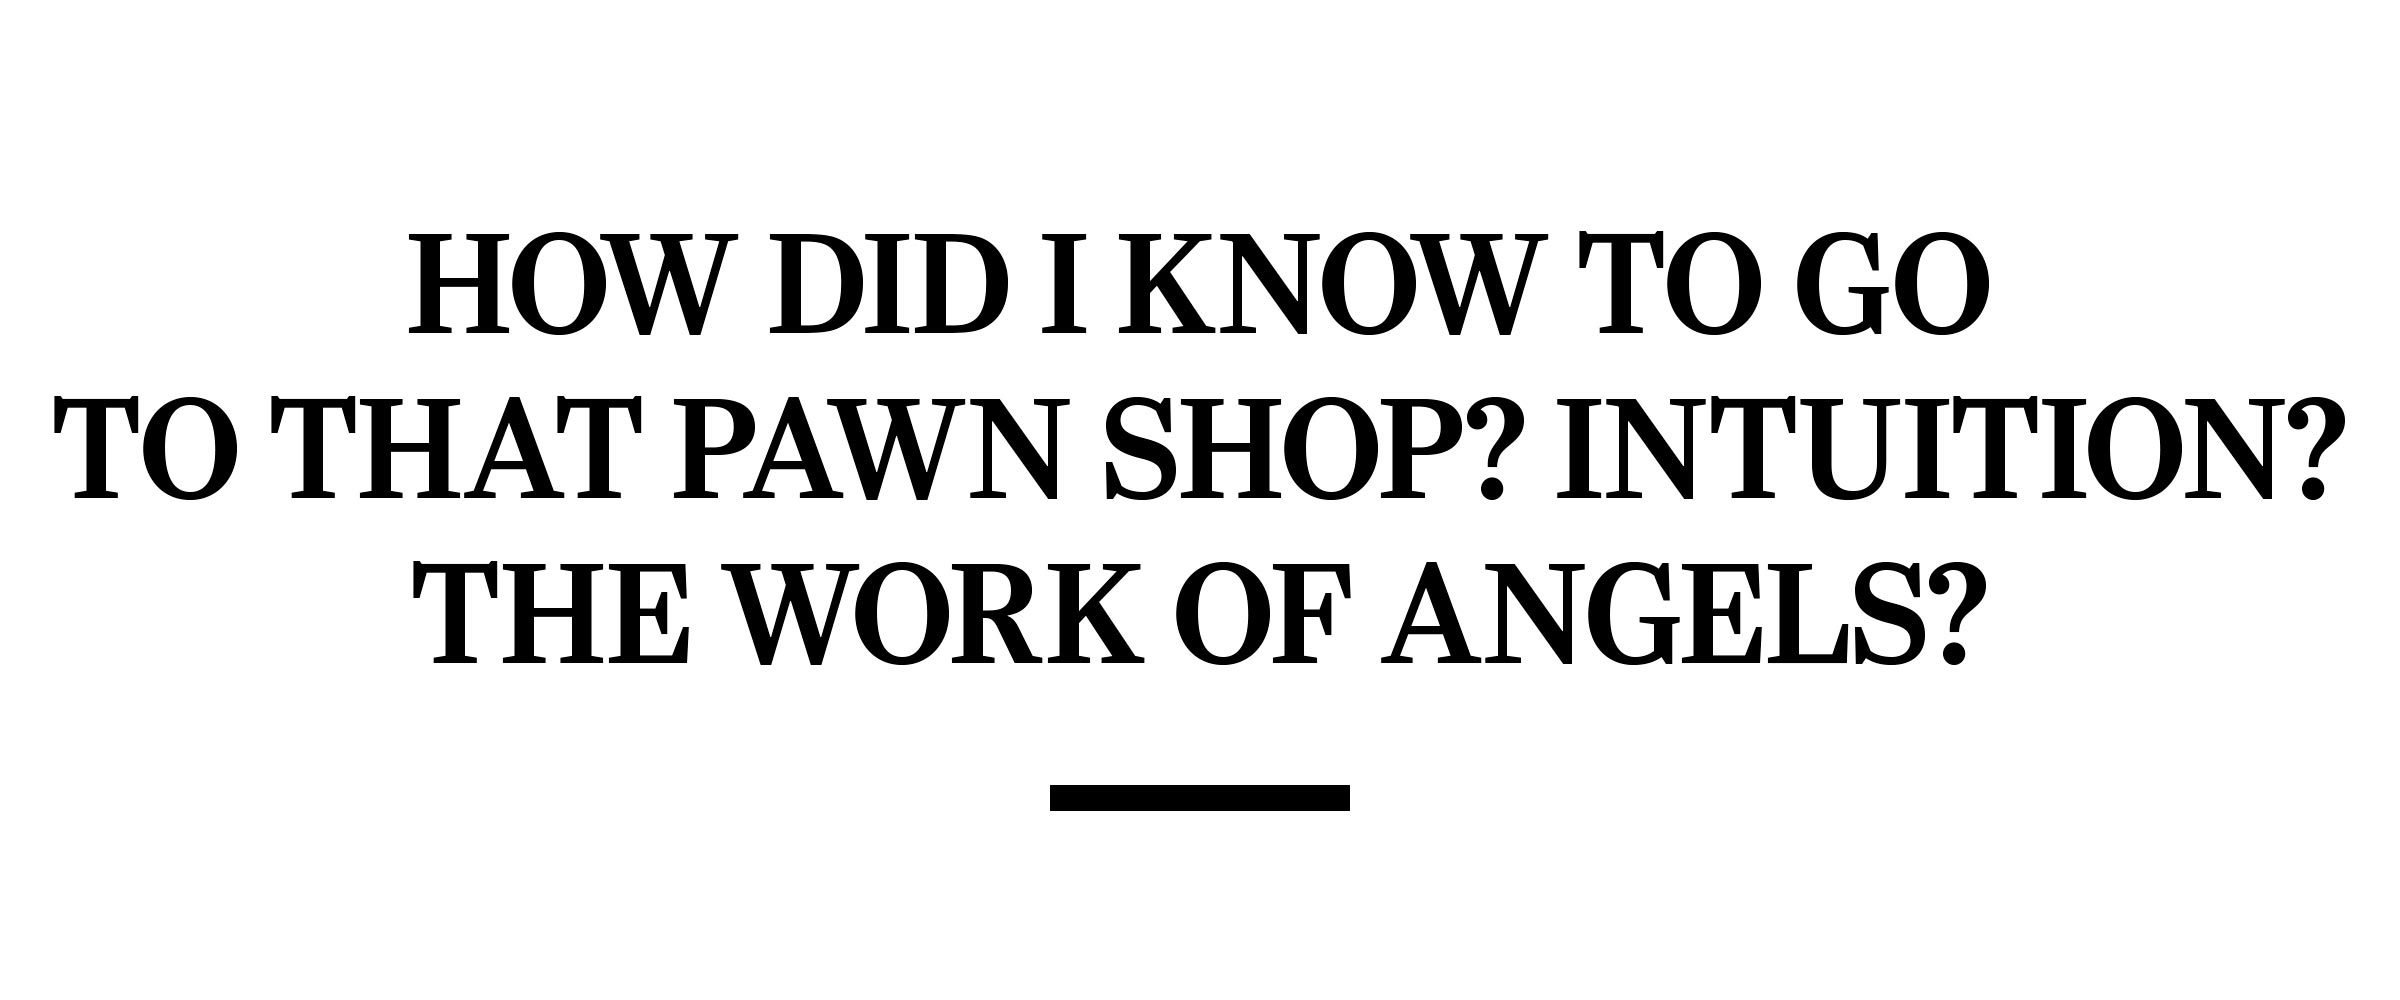 text: How did I know to go to that pawn shop? Intuition? The work of angels?